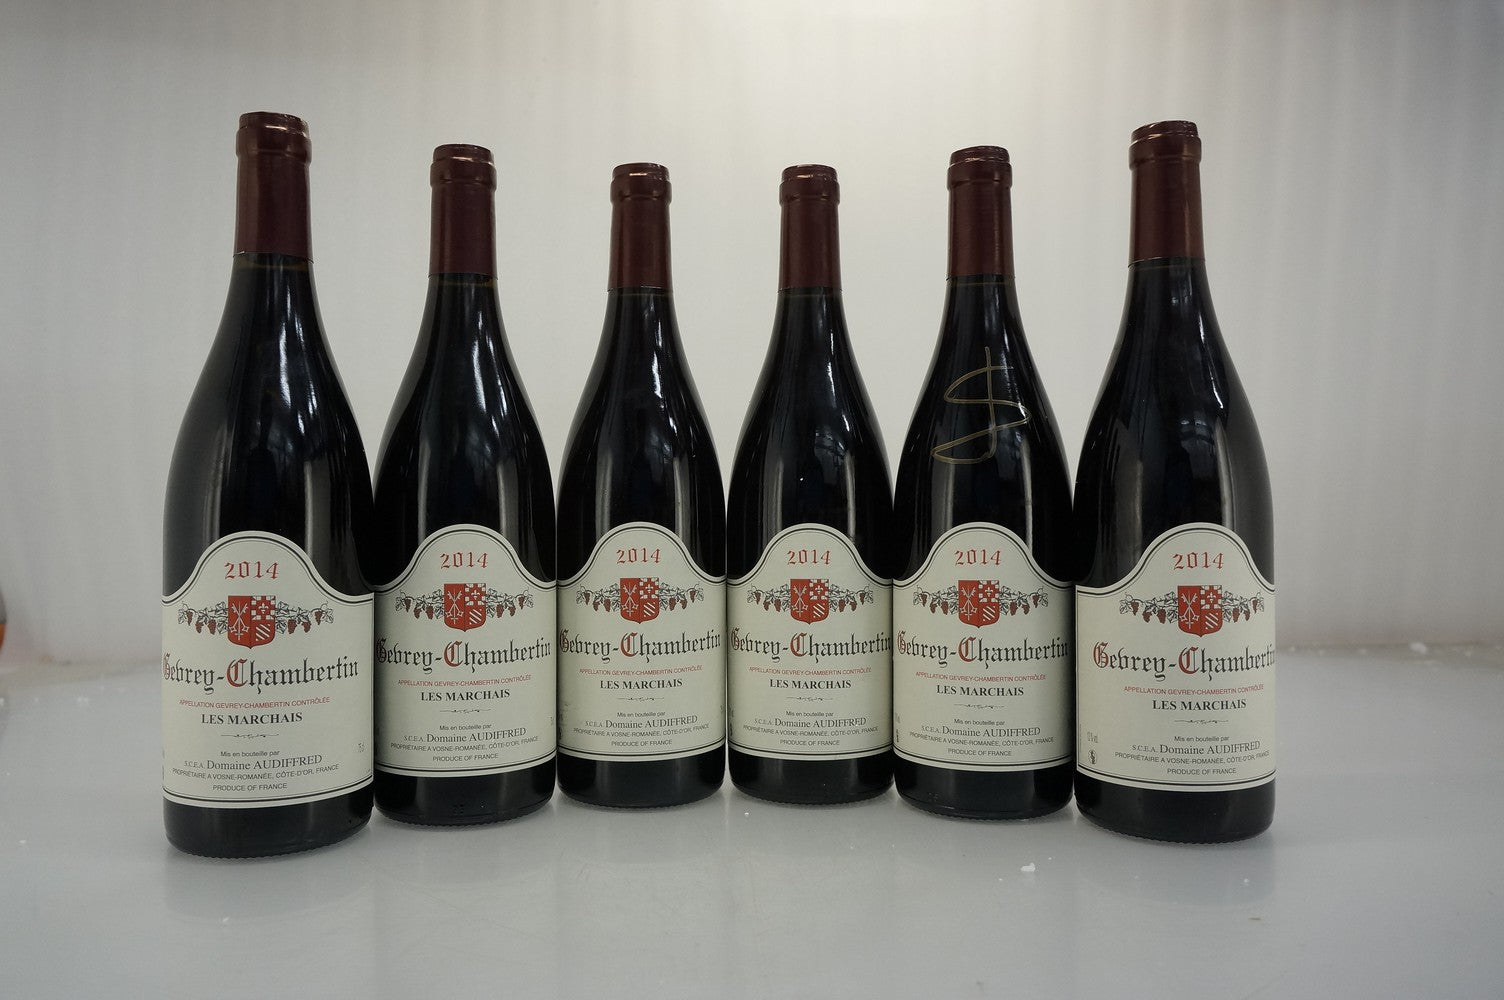 Audiffred Gevrey Chambertin Les Marchais 2014